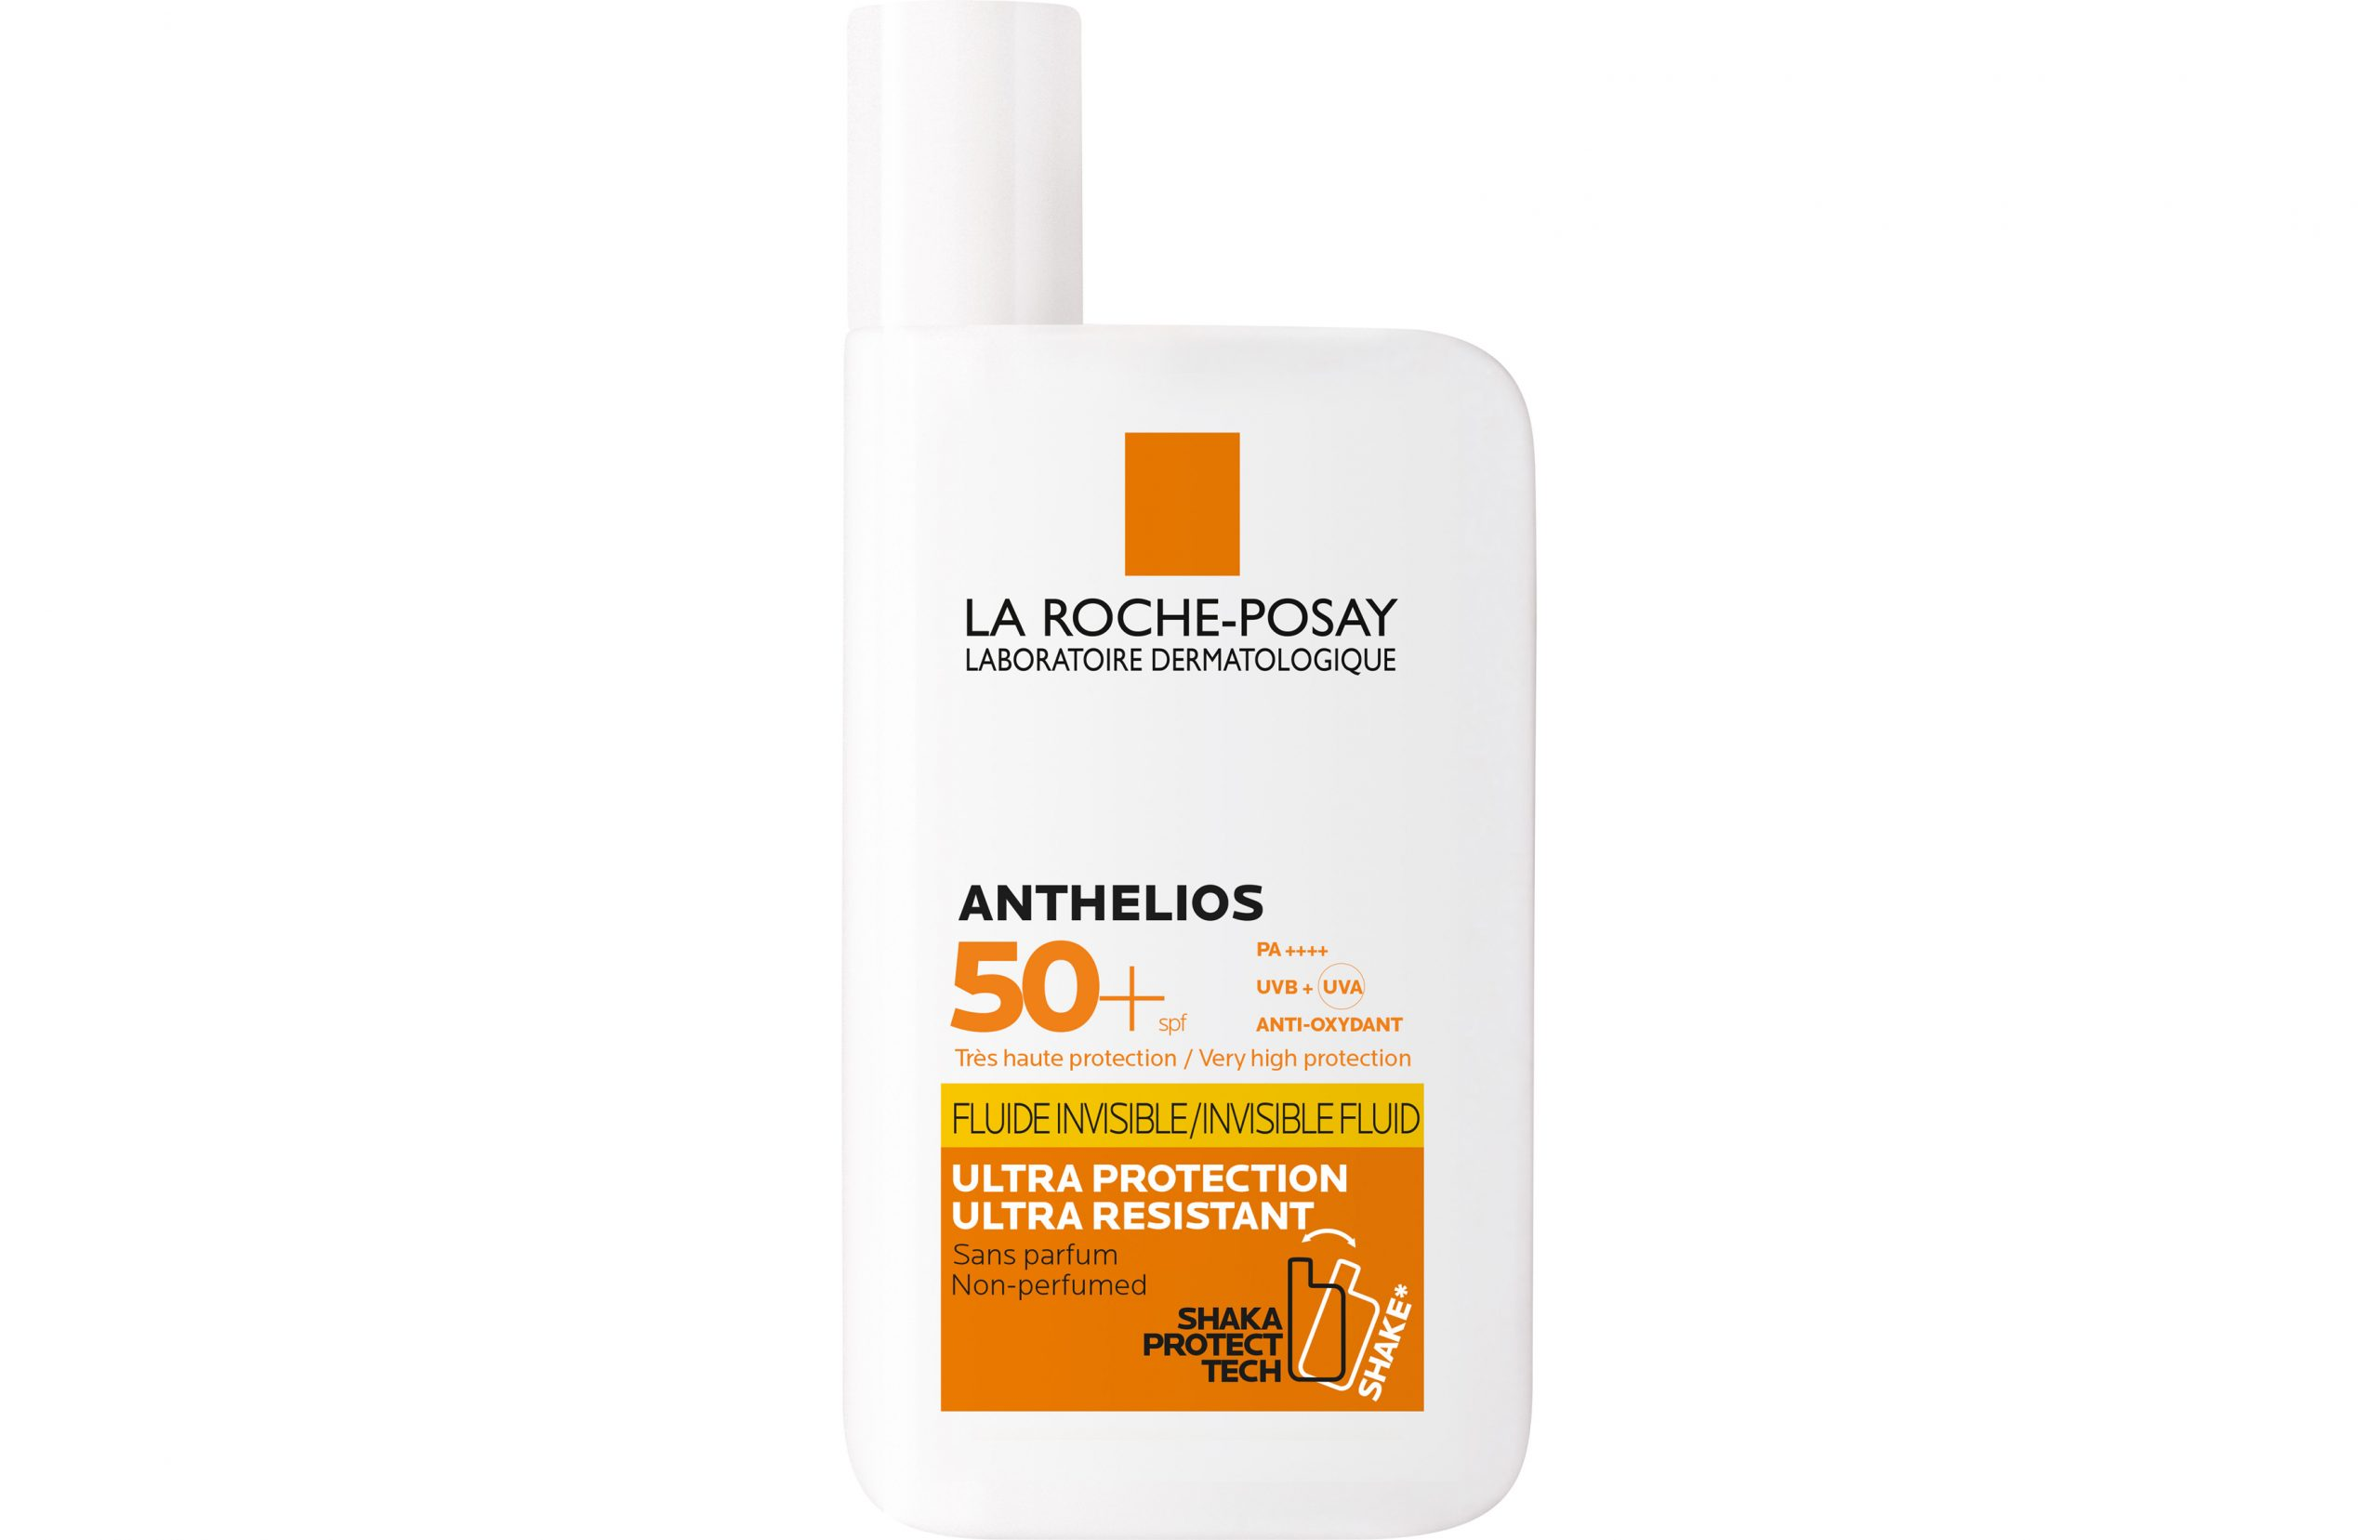 Everything you need to know about sunscreen on staycation, 1be5f390 5bdd 413b bc7a a35ae3c1fd76 scaled%, daily-dad, health%